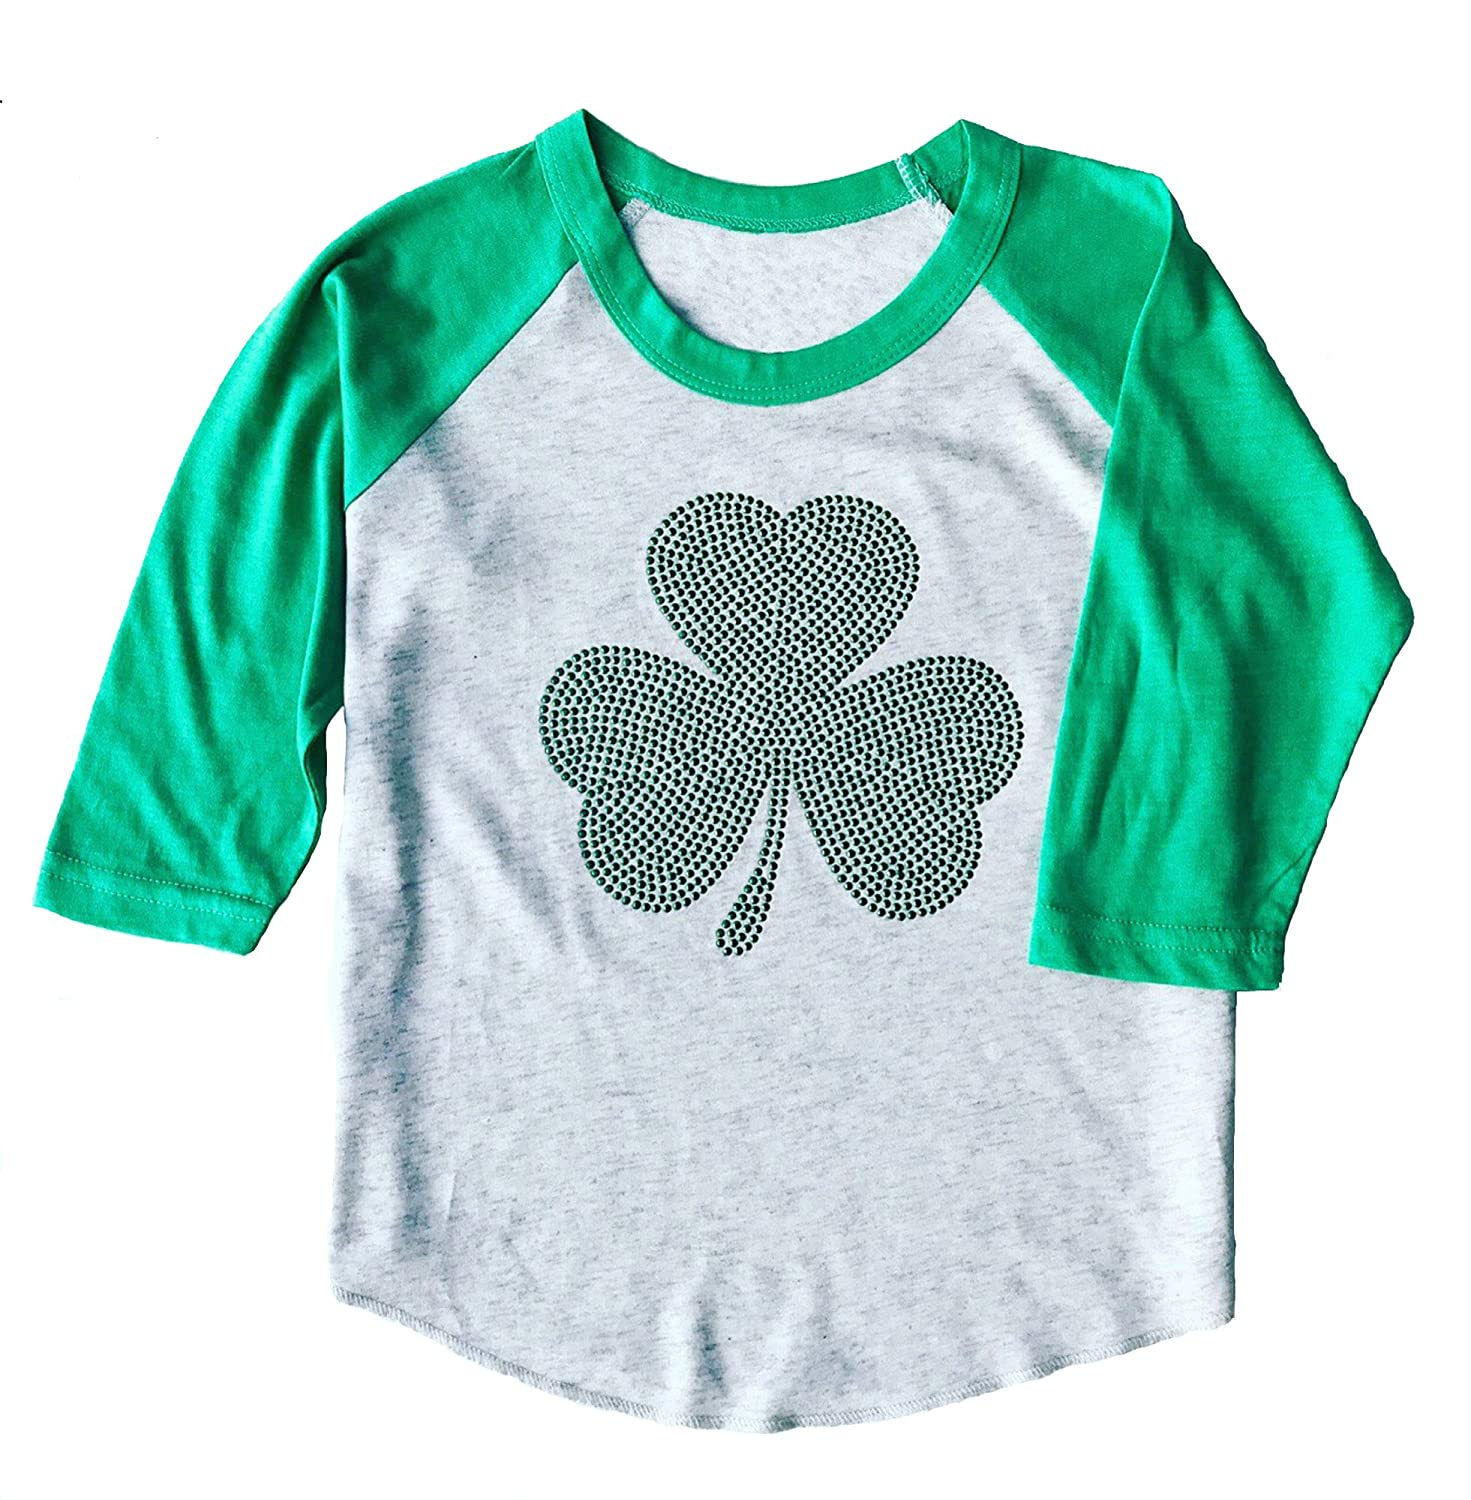 939cdc545 Our most popular adult raglan is now available in kids. Available in Baby &  Toddler Sizes. adult version is a perfect match for a